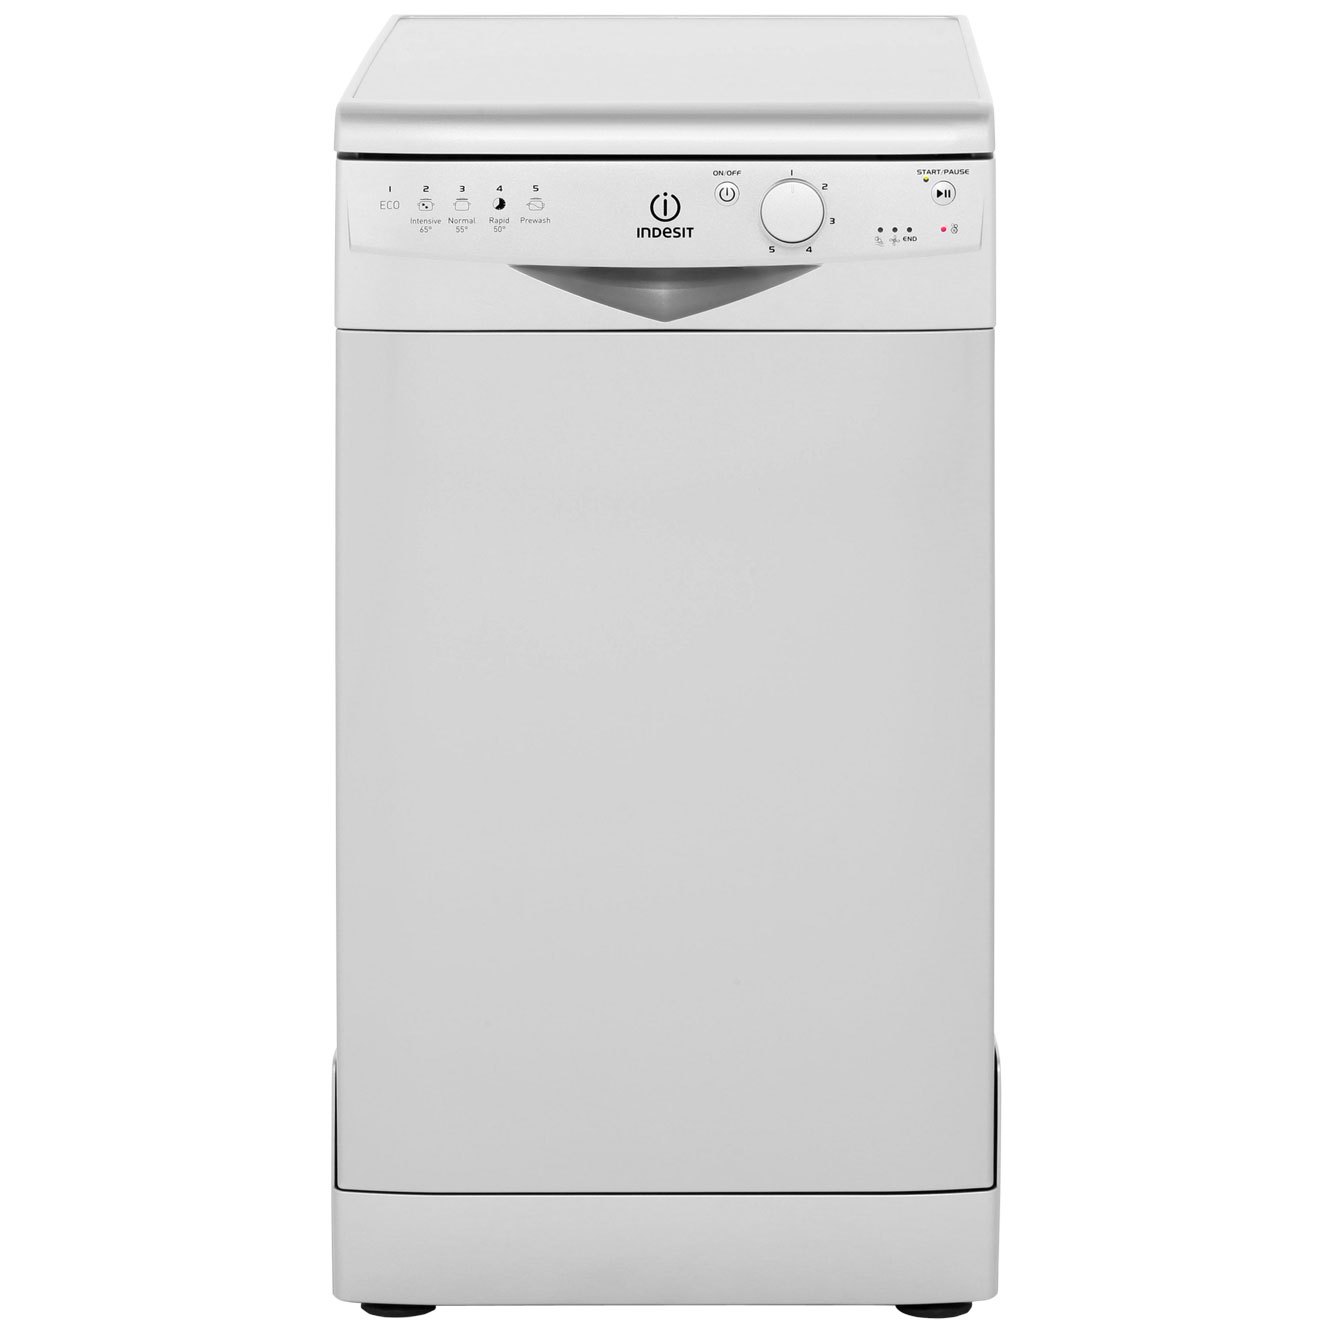 Indesit DSR15BS Free Standing Slimline Dishwasher in Silver